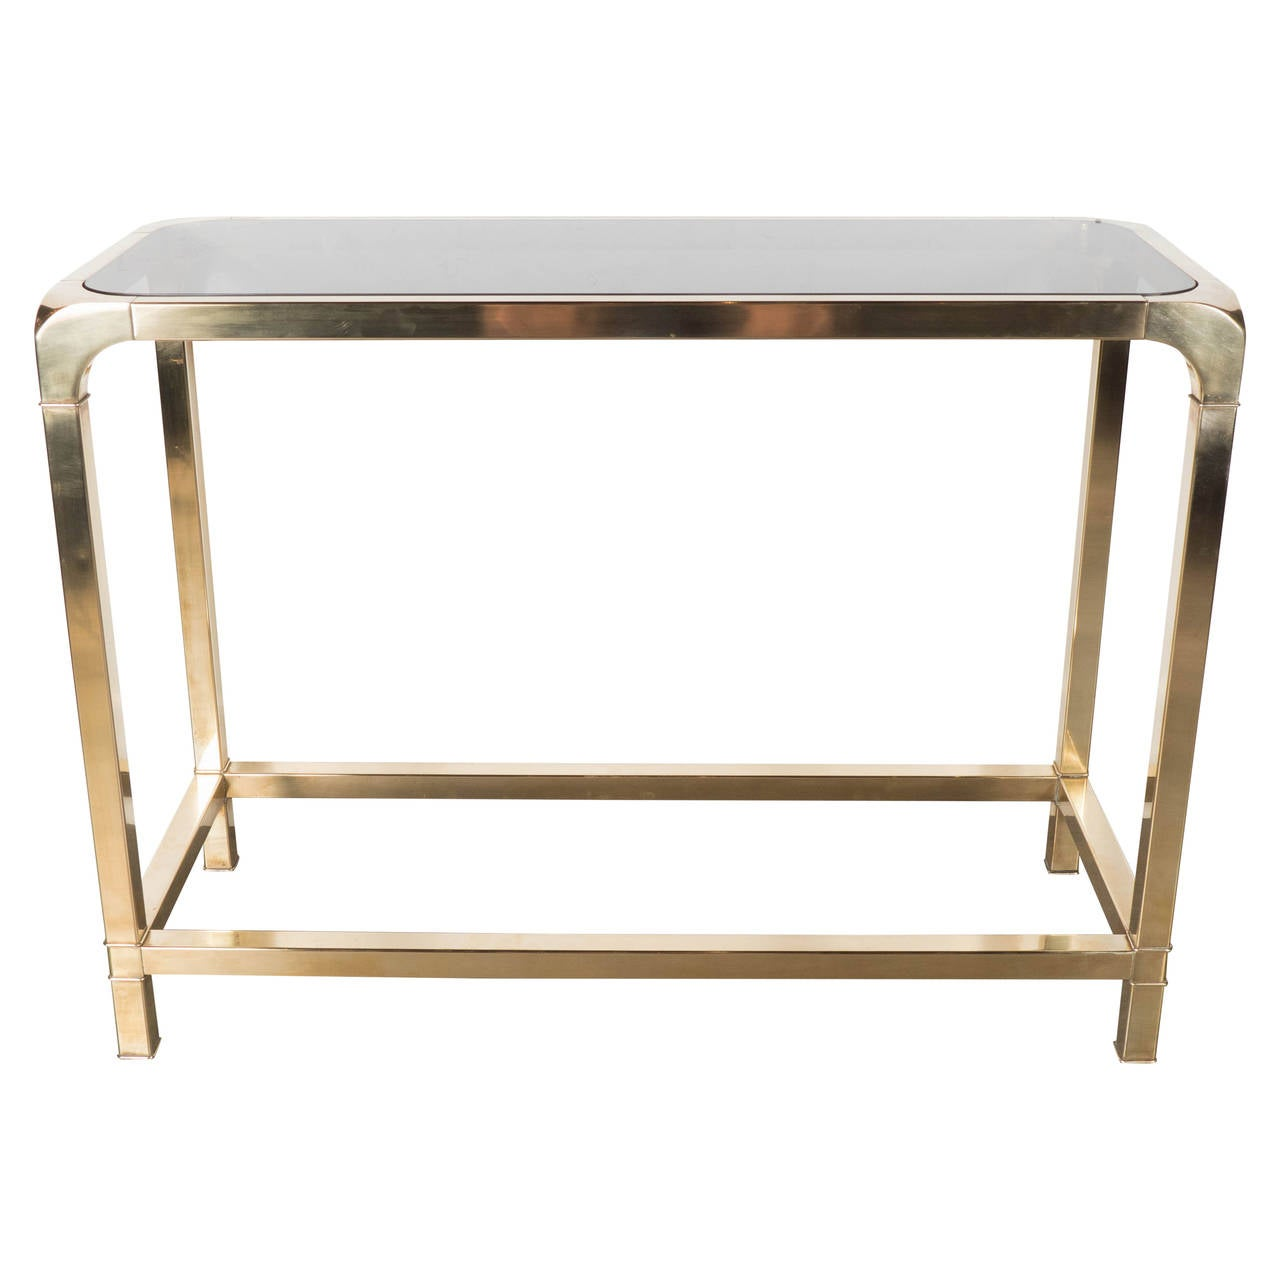 Mid Century Modernist Cubist Form Brass And Smoked Glass Console Table At 1stdibs